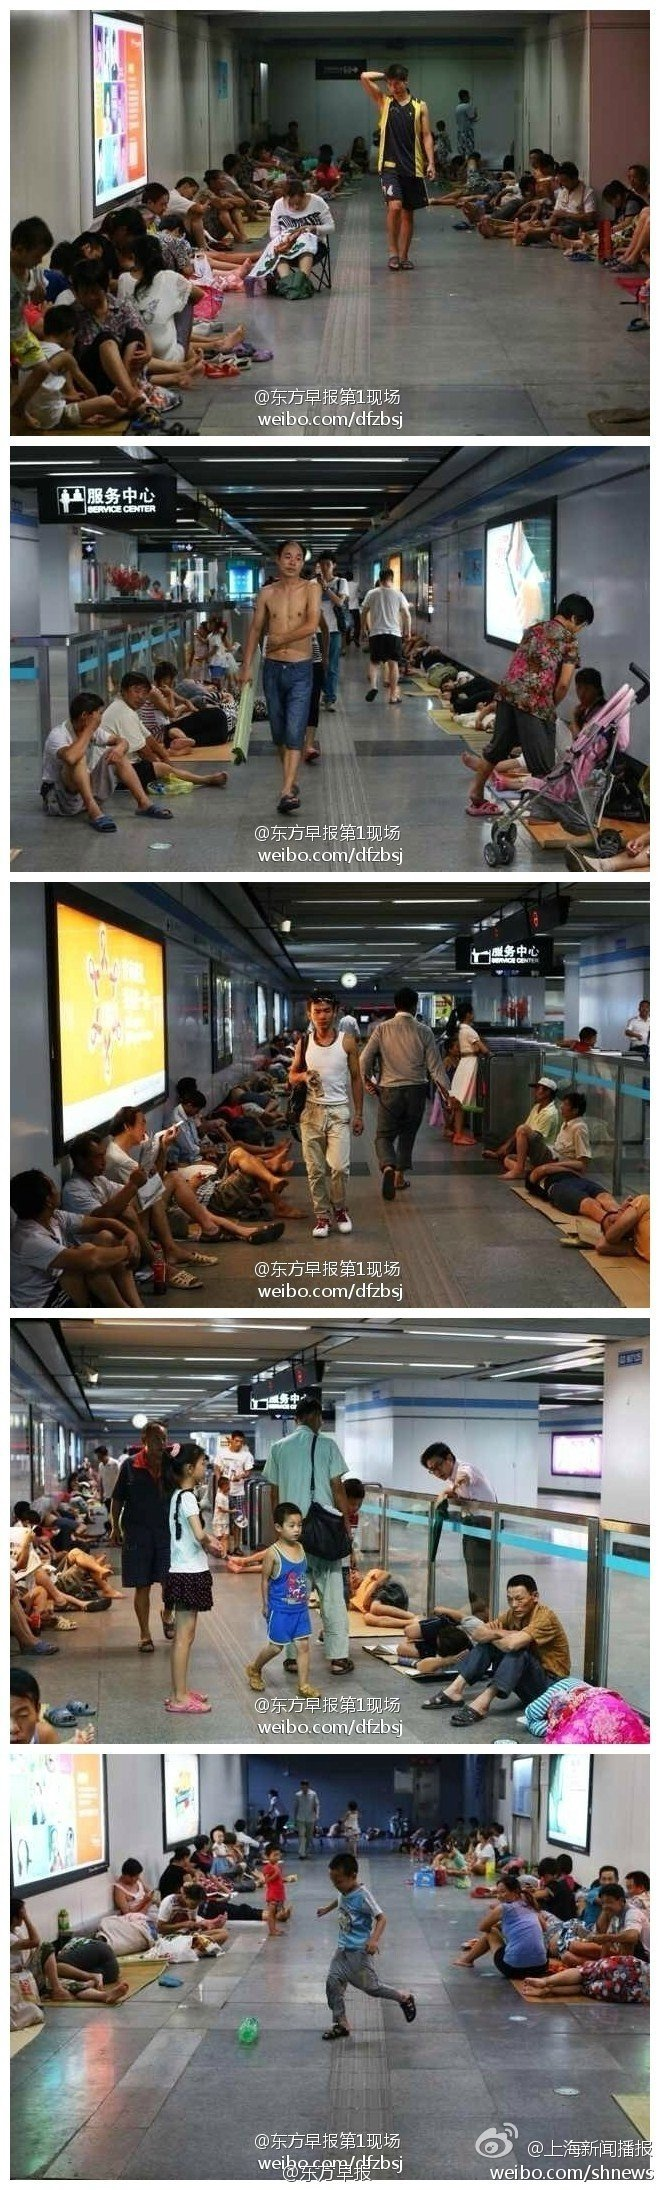 Shanghai Summer Subway